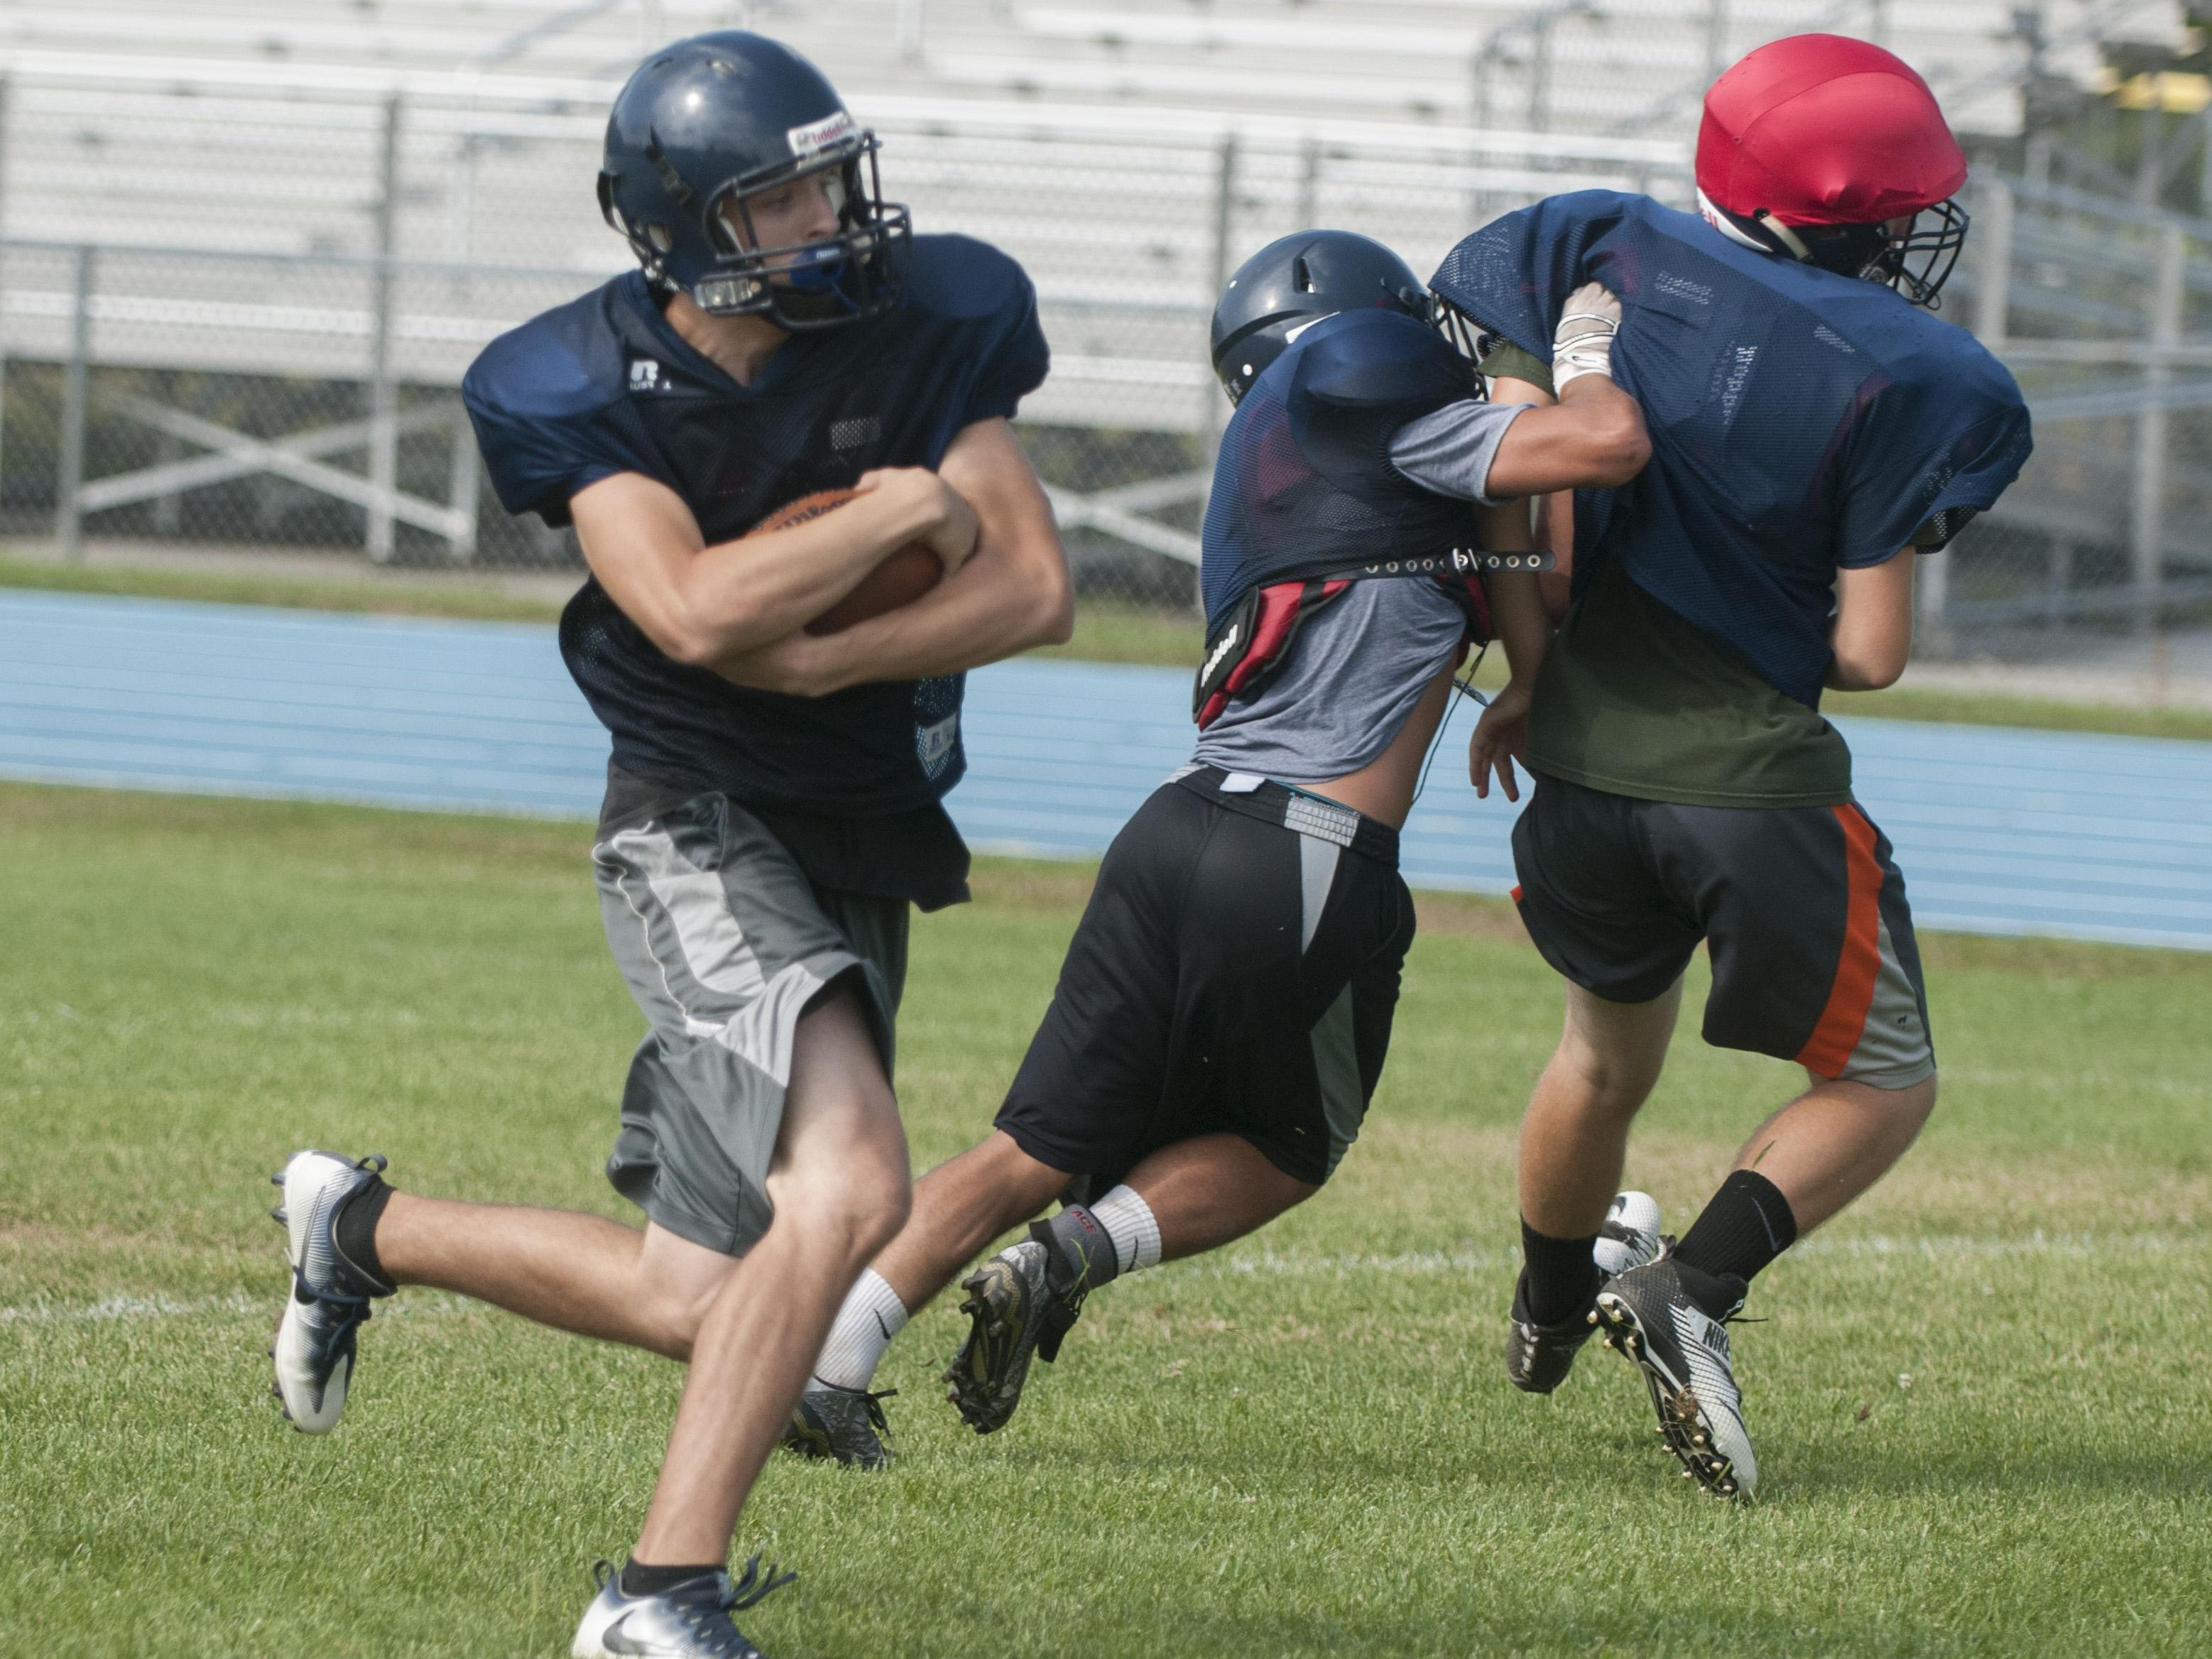 Yale's Andrew Phillips runs the ball Thursday, Aug. 11, 2016 during their football practice at Yale High School.